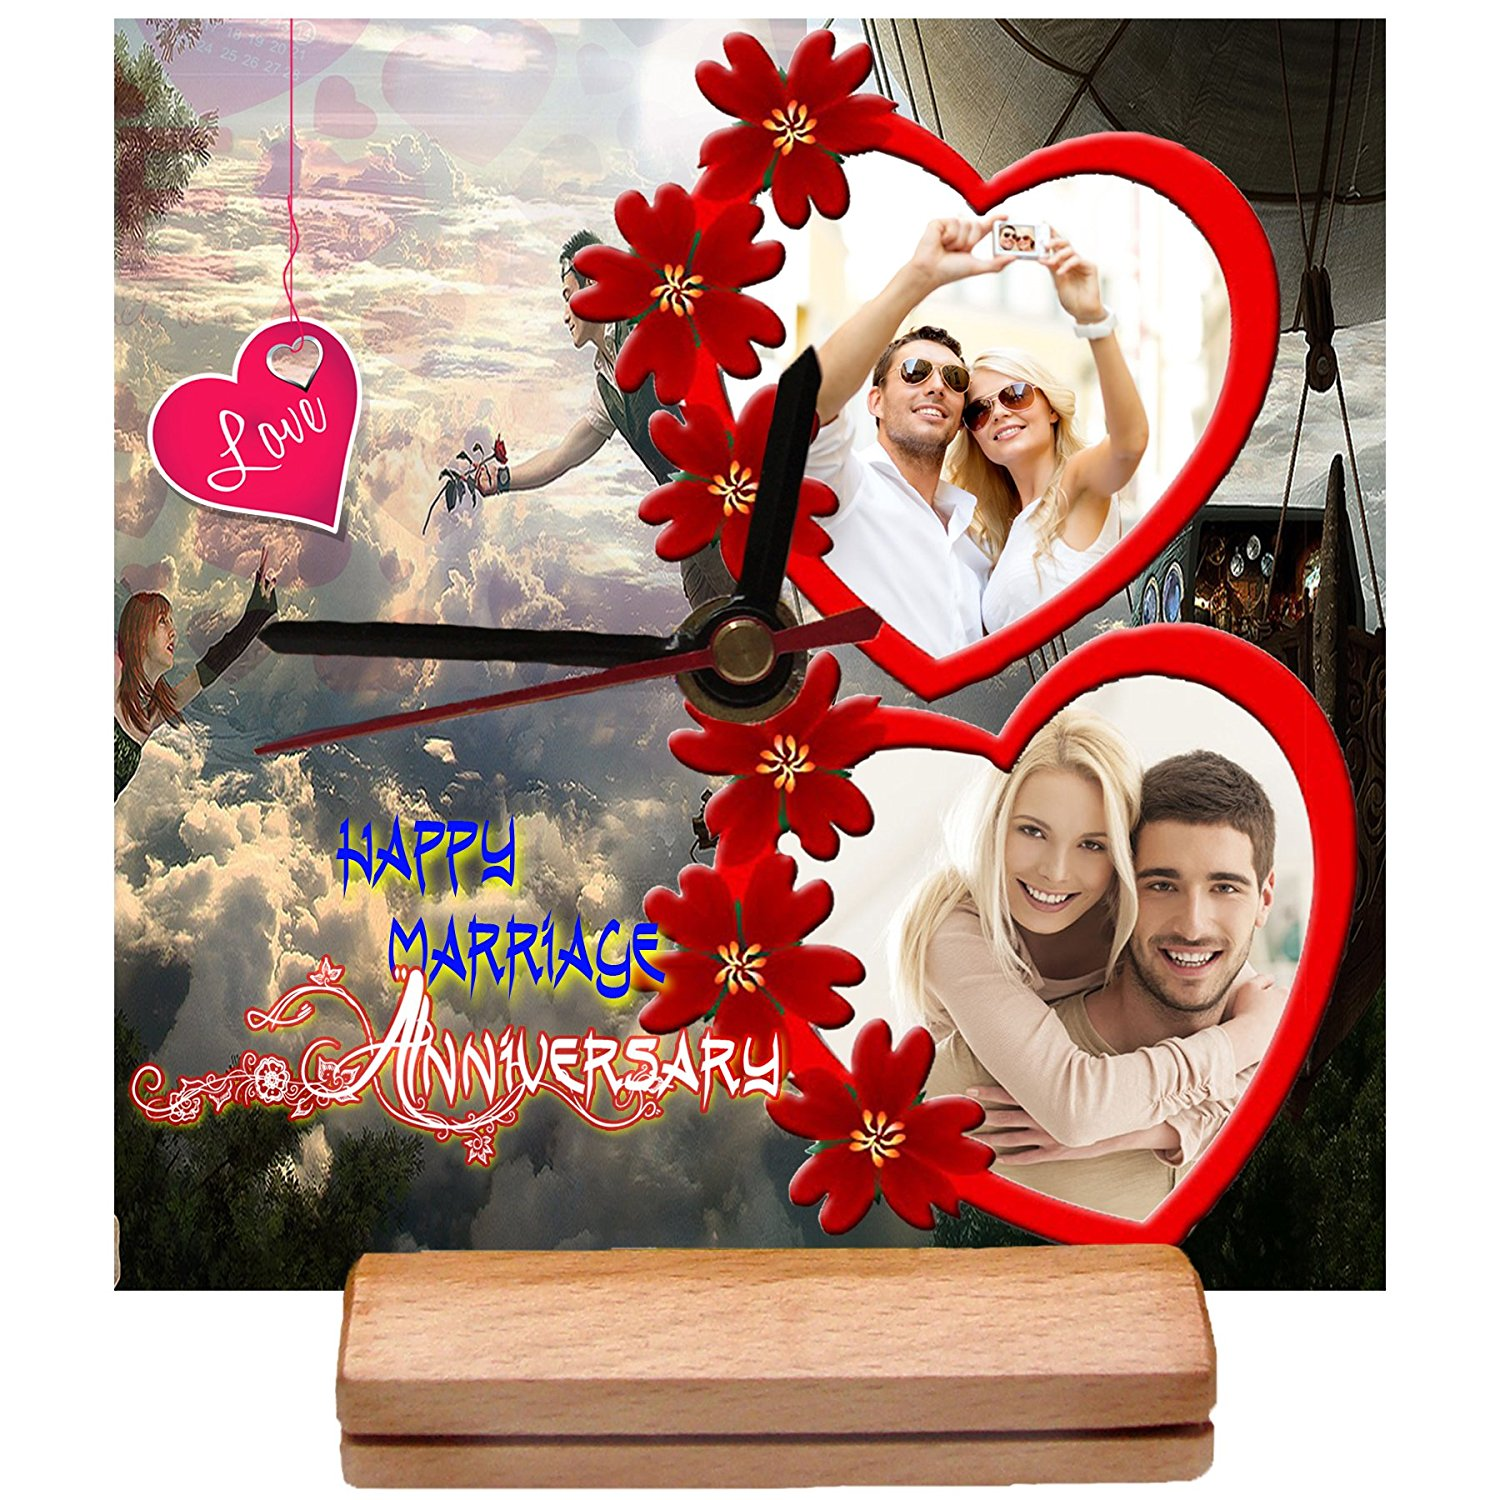 6995e7590f8 20 Best Personalized Wall Clocks with Pictures   Designs for All ...